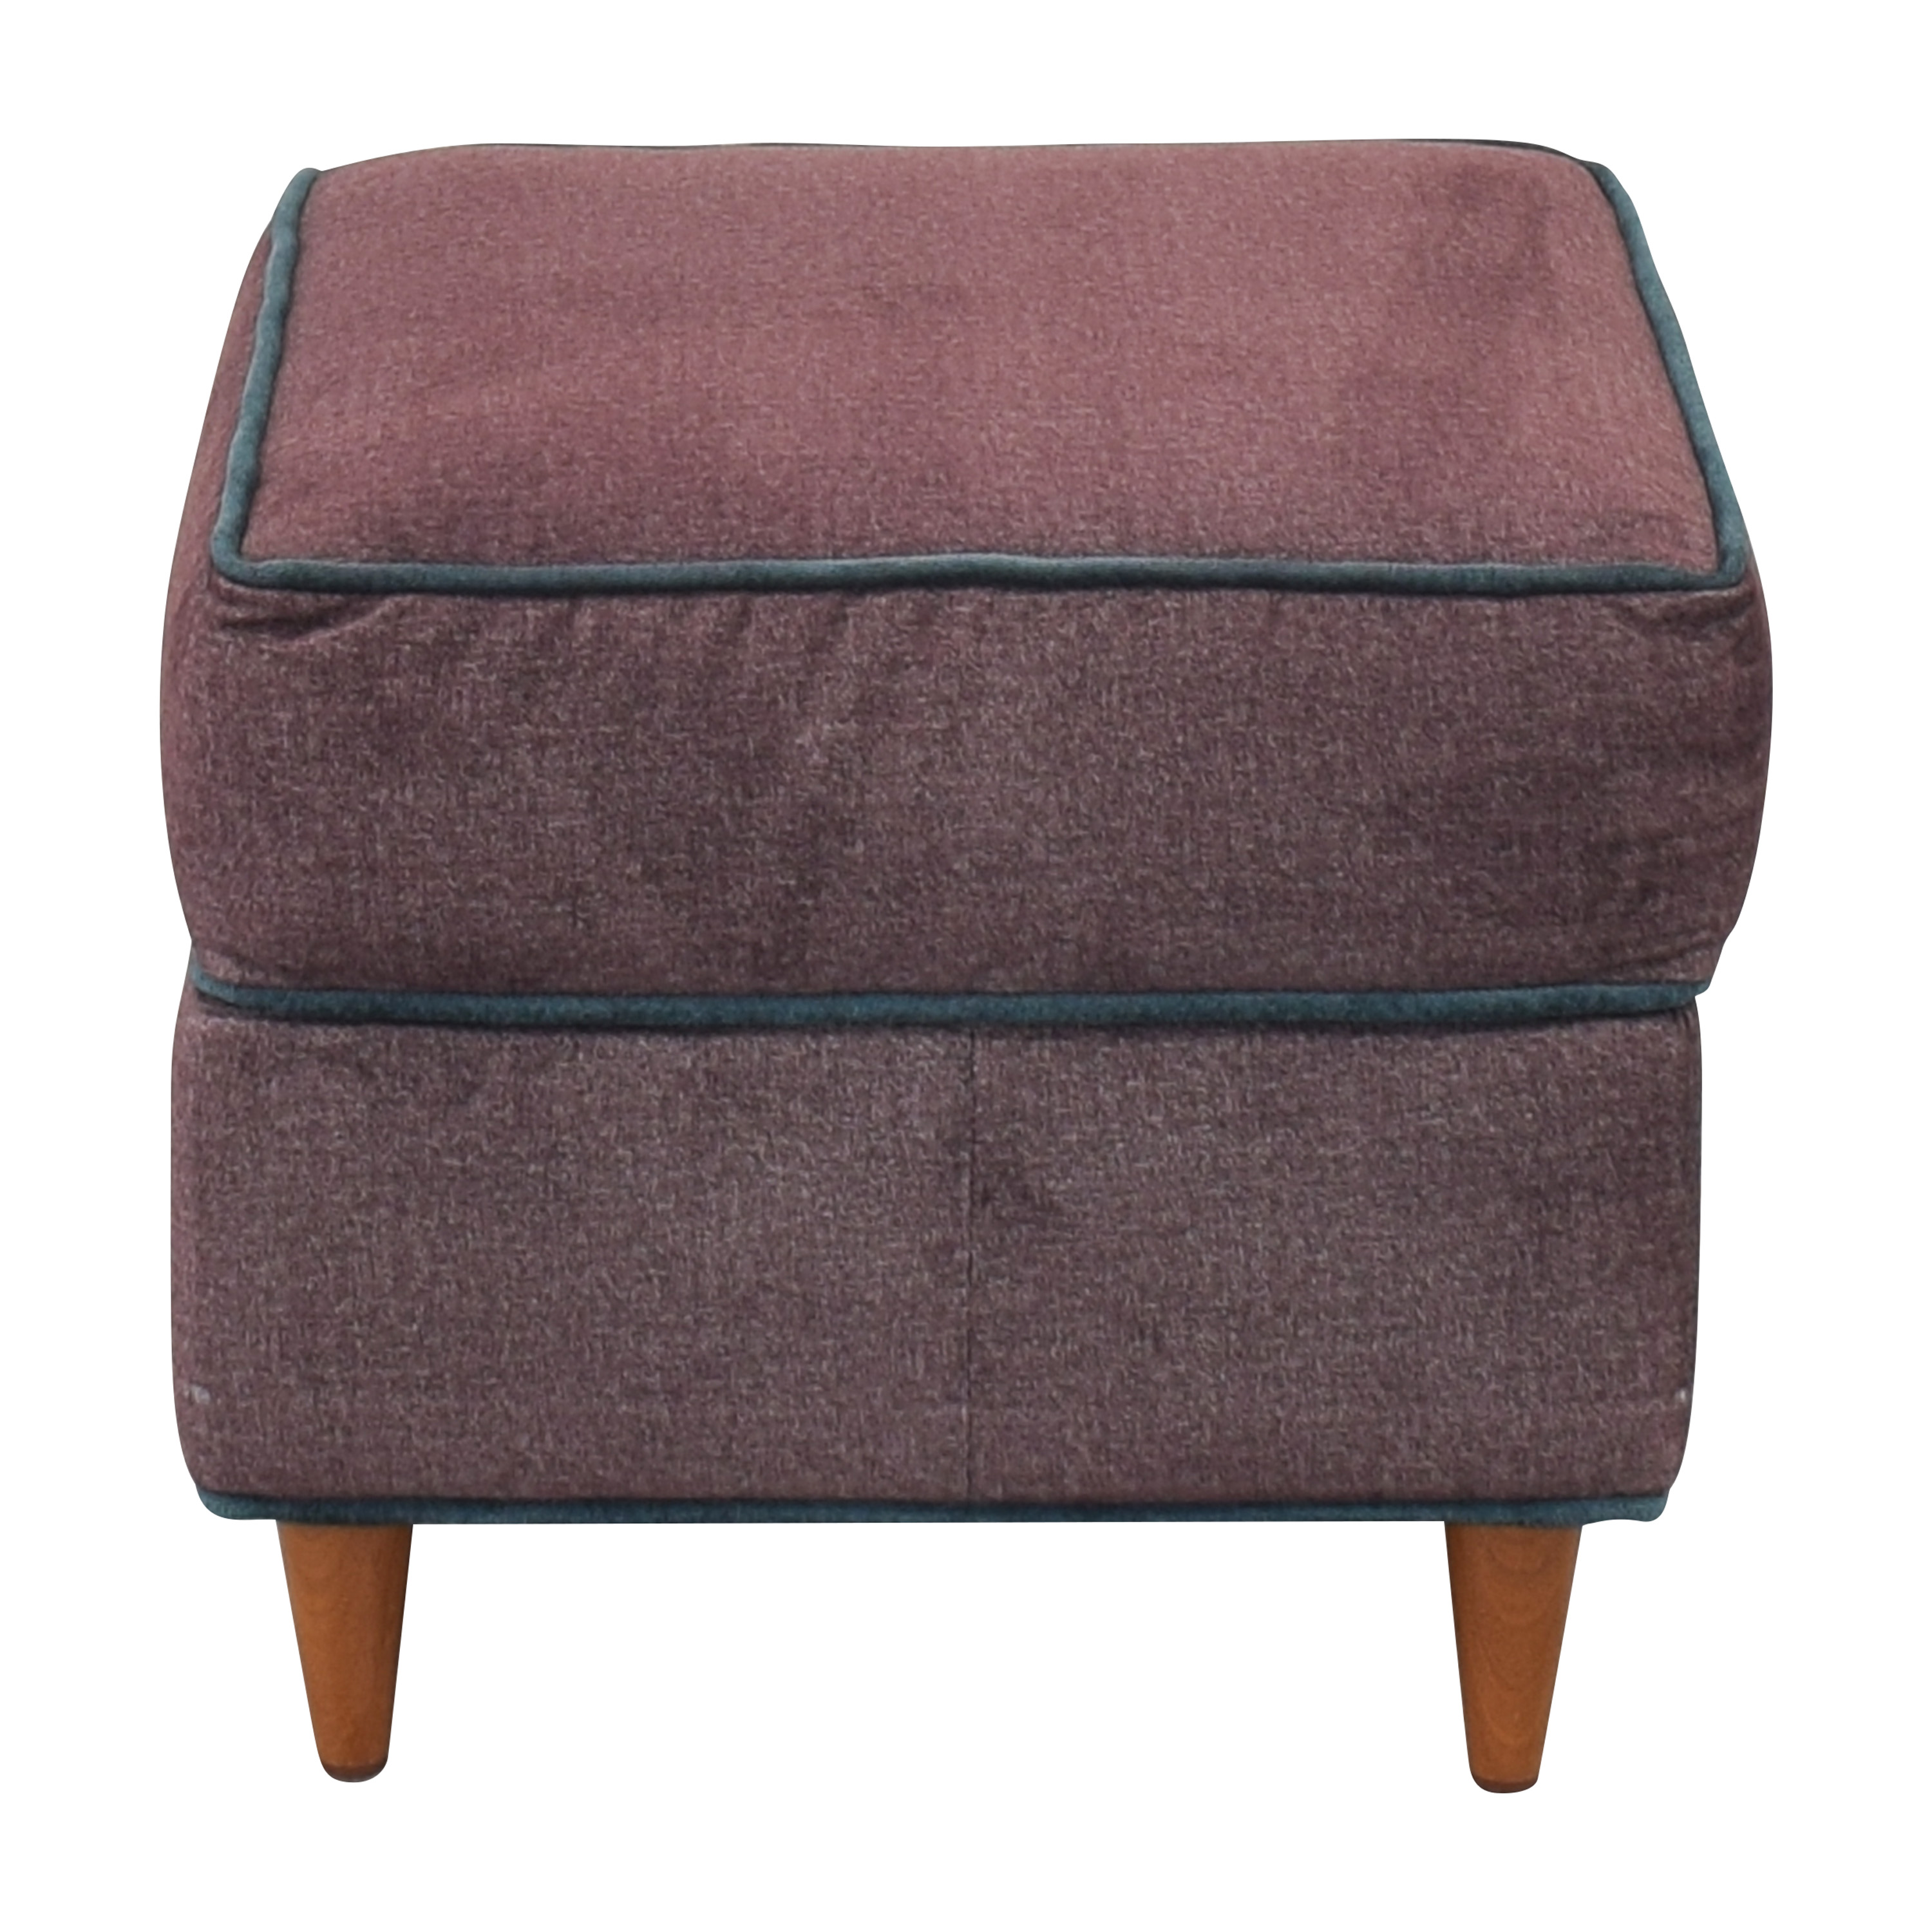 Custom Upholstered Ottoman Chairs